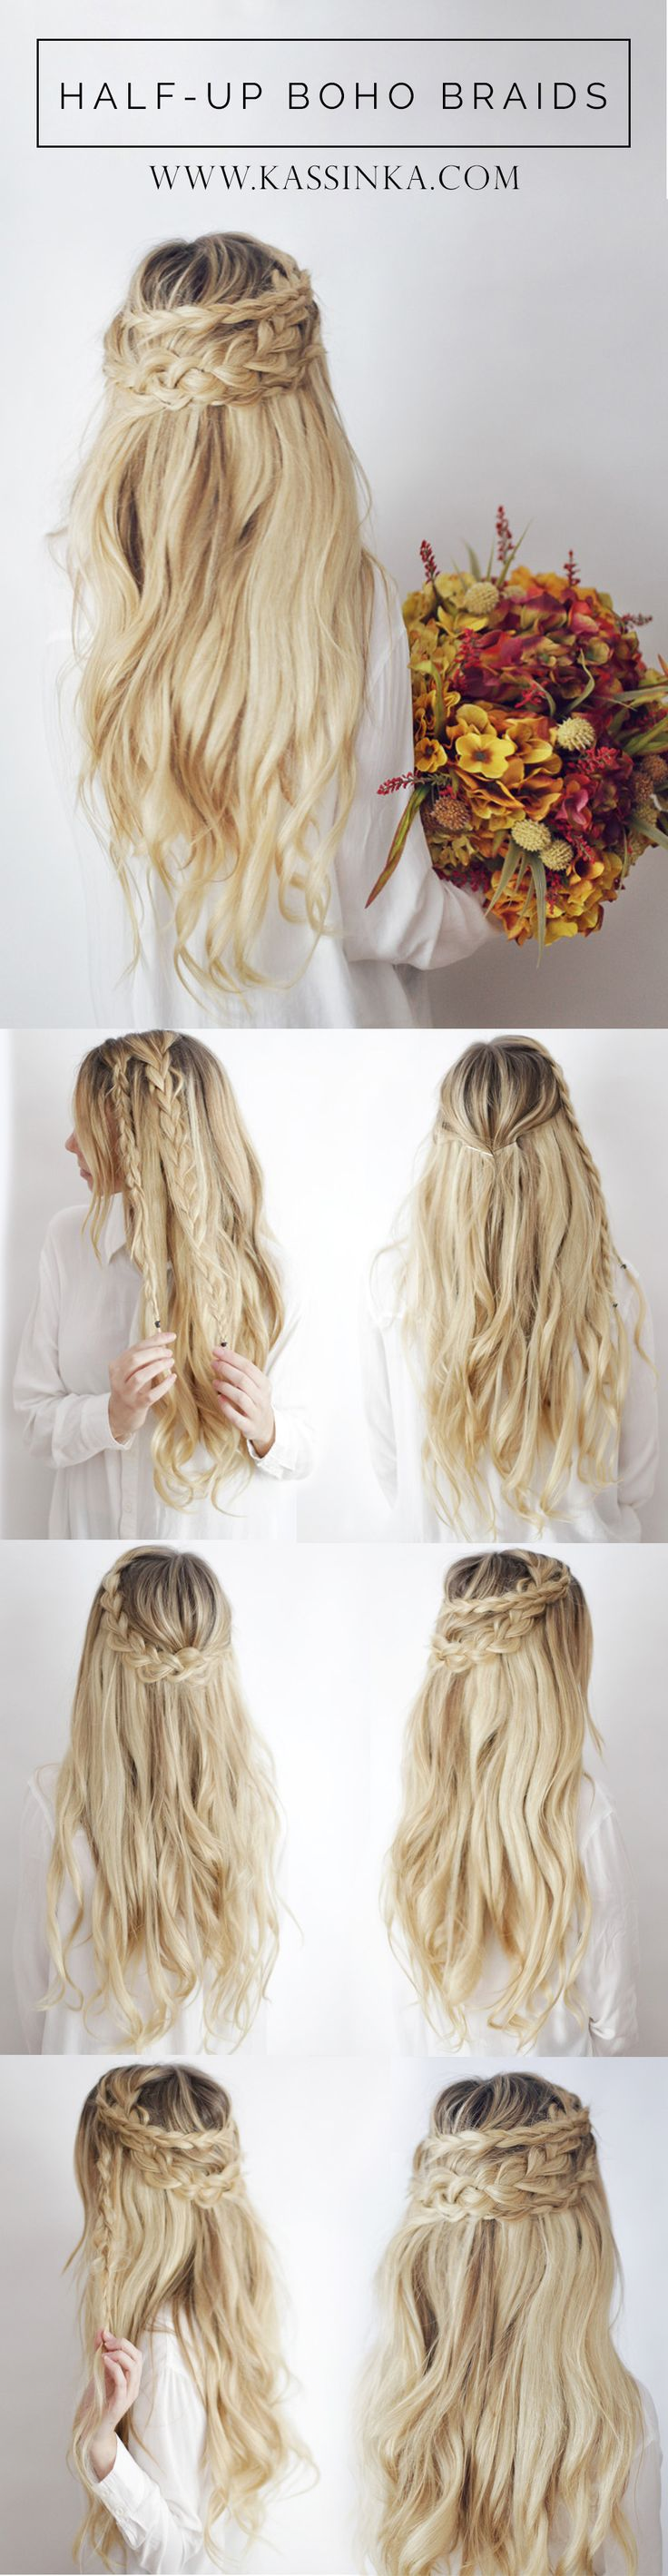 251 best Hairstyle Ideas images on Pinterest